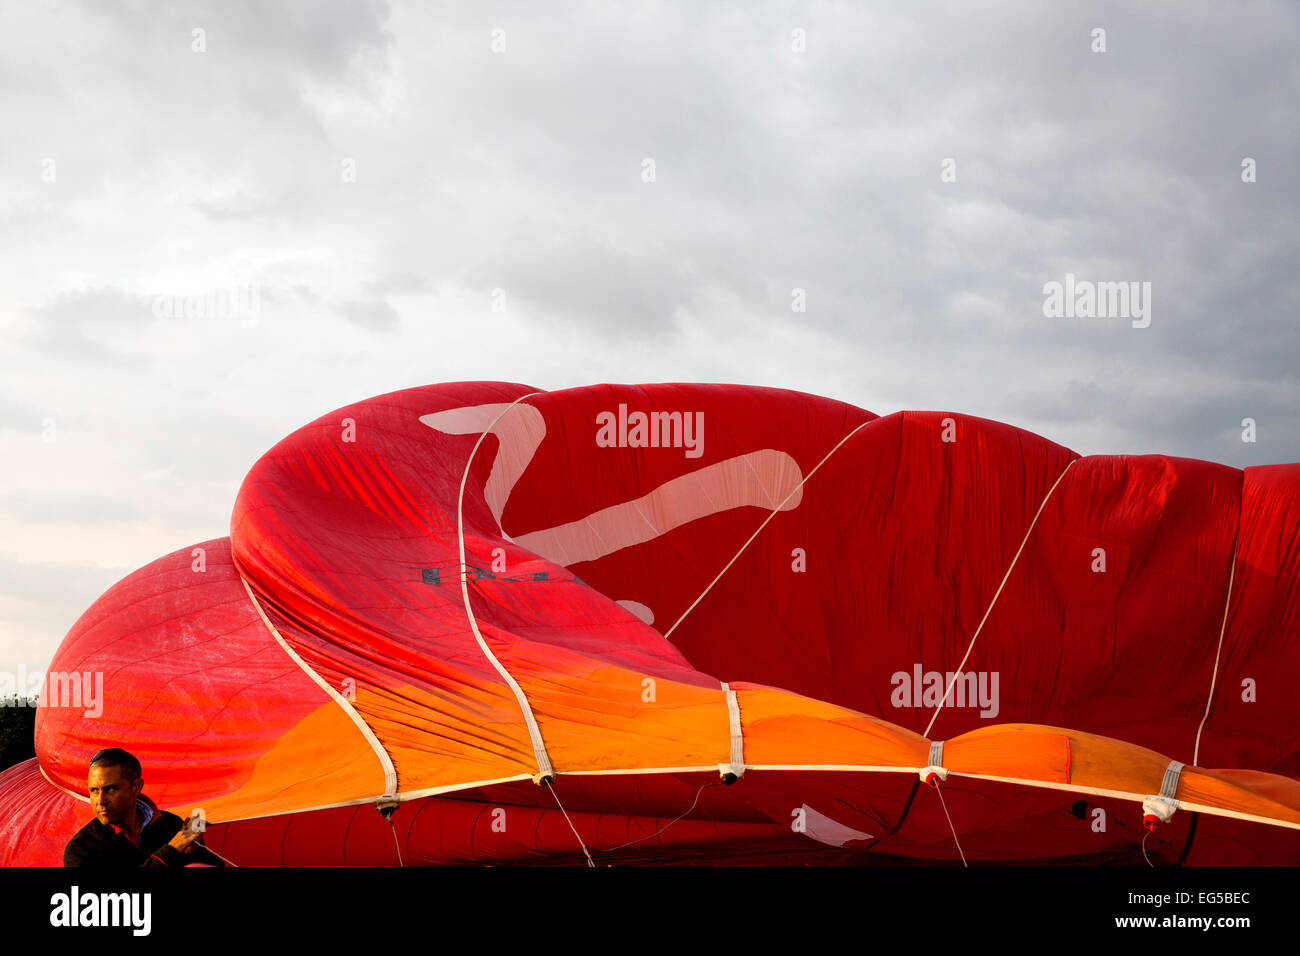 Man controlling billowing red hot air balloon, South Oxfordshire, England - Stock Image